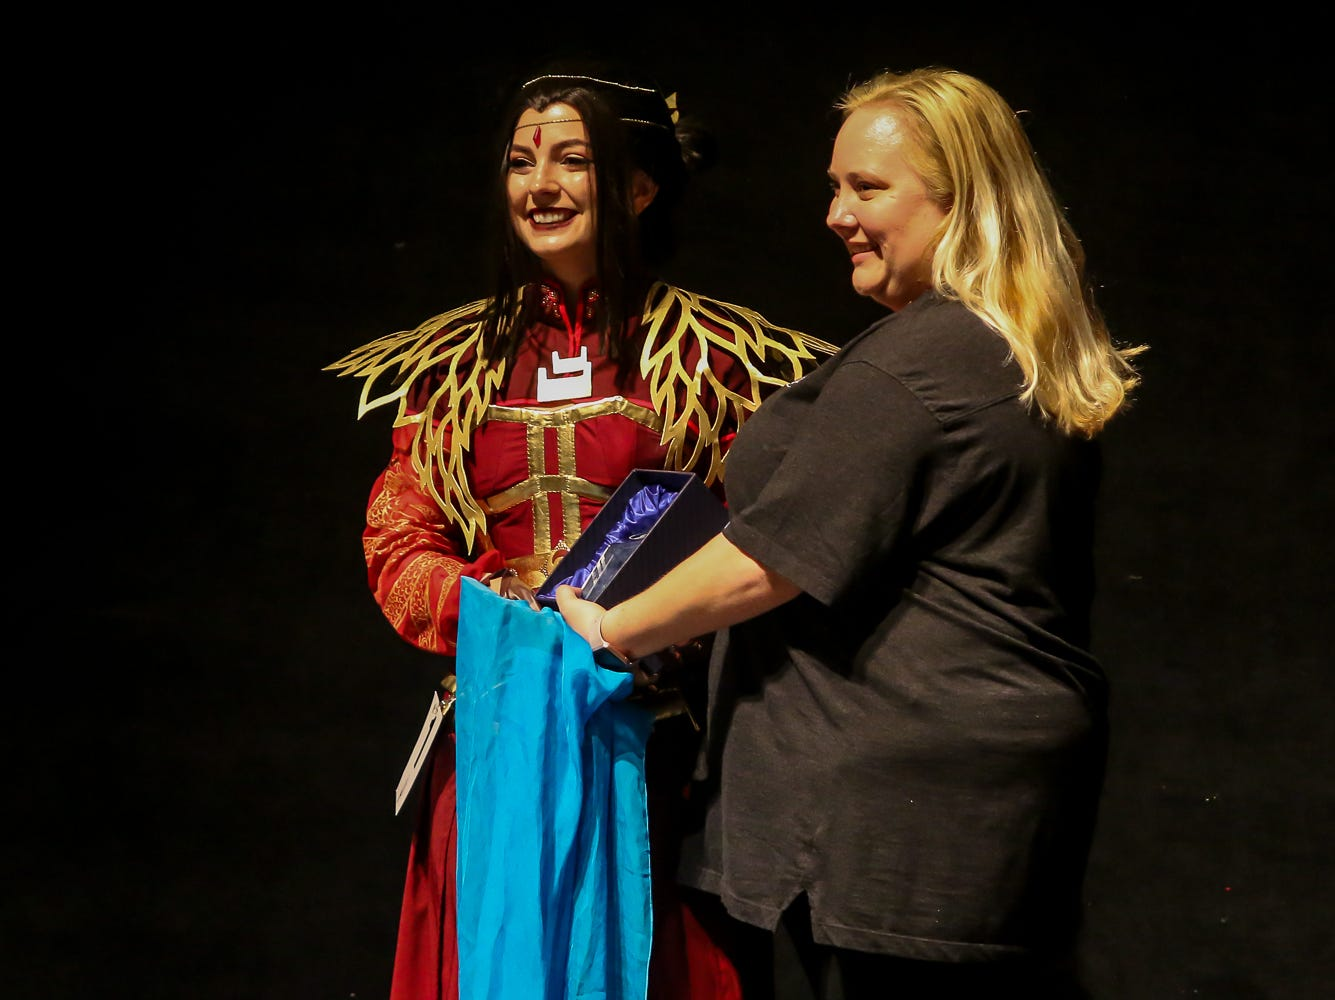 The first place winner in the Master's Division of the Pensacon cosplay contest presented by McGuire's Irish Pub at the Saenger Theatre on Saturday, February 23, 2019.